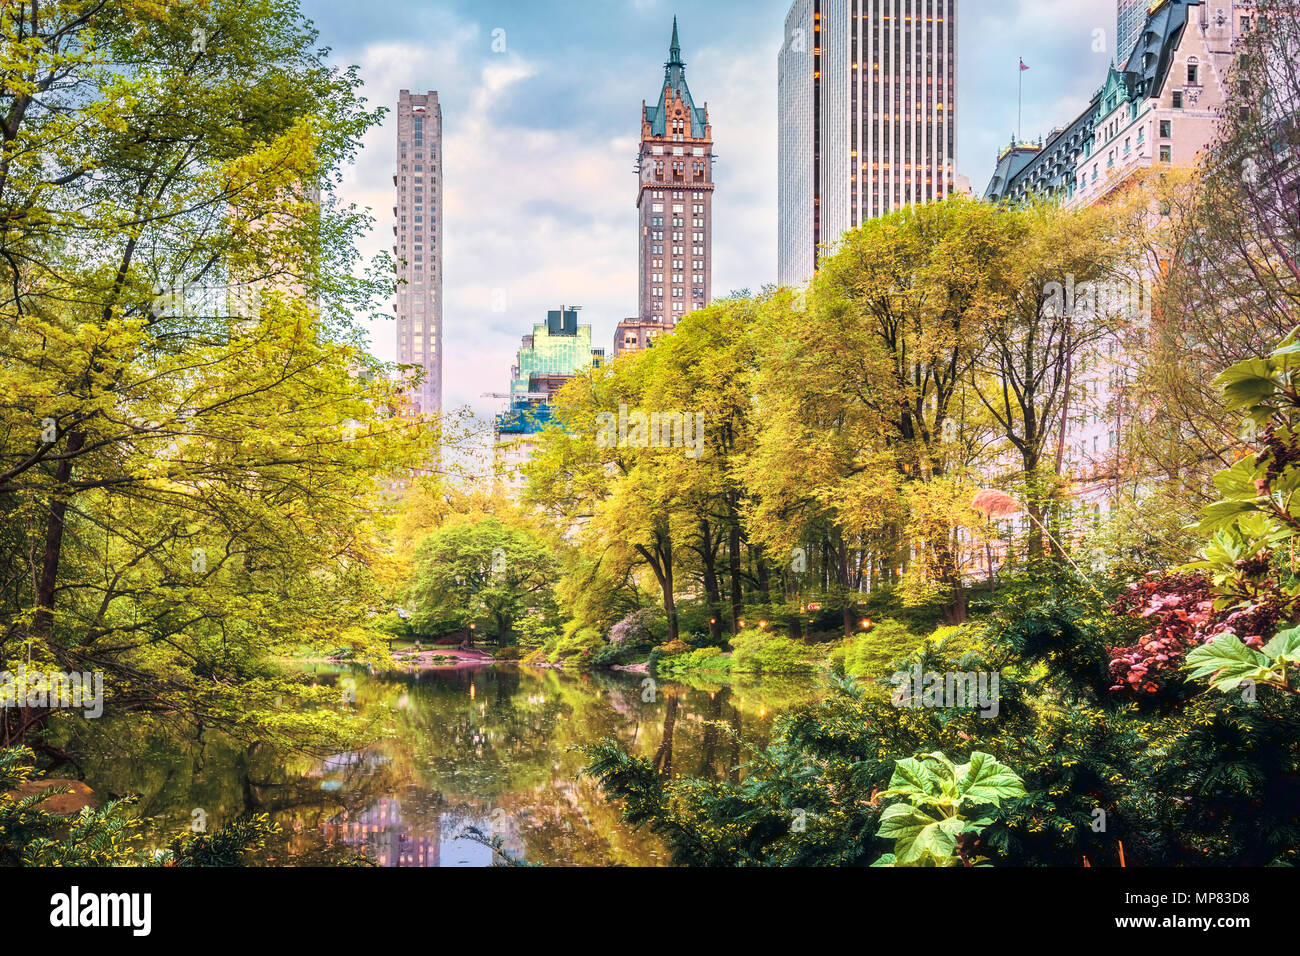 The Pond in Central Park, New York City - Stock Image